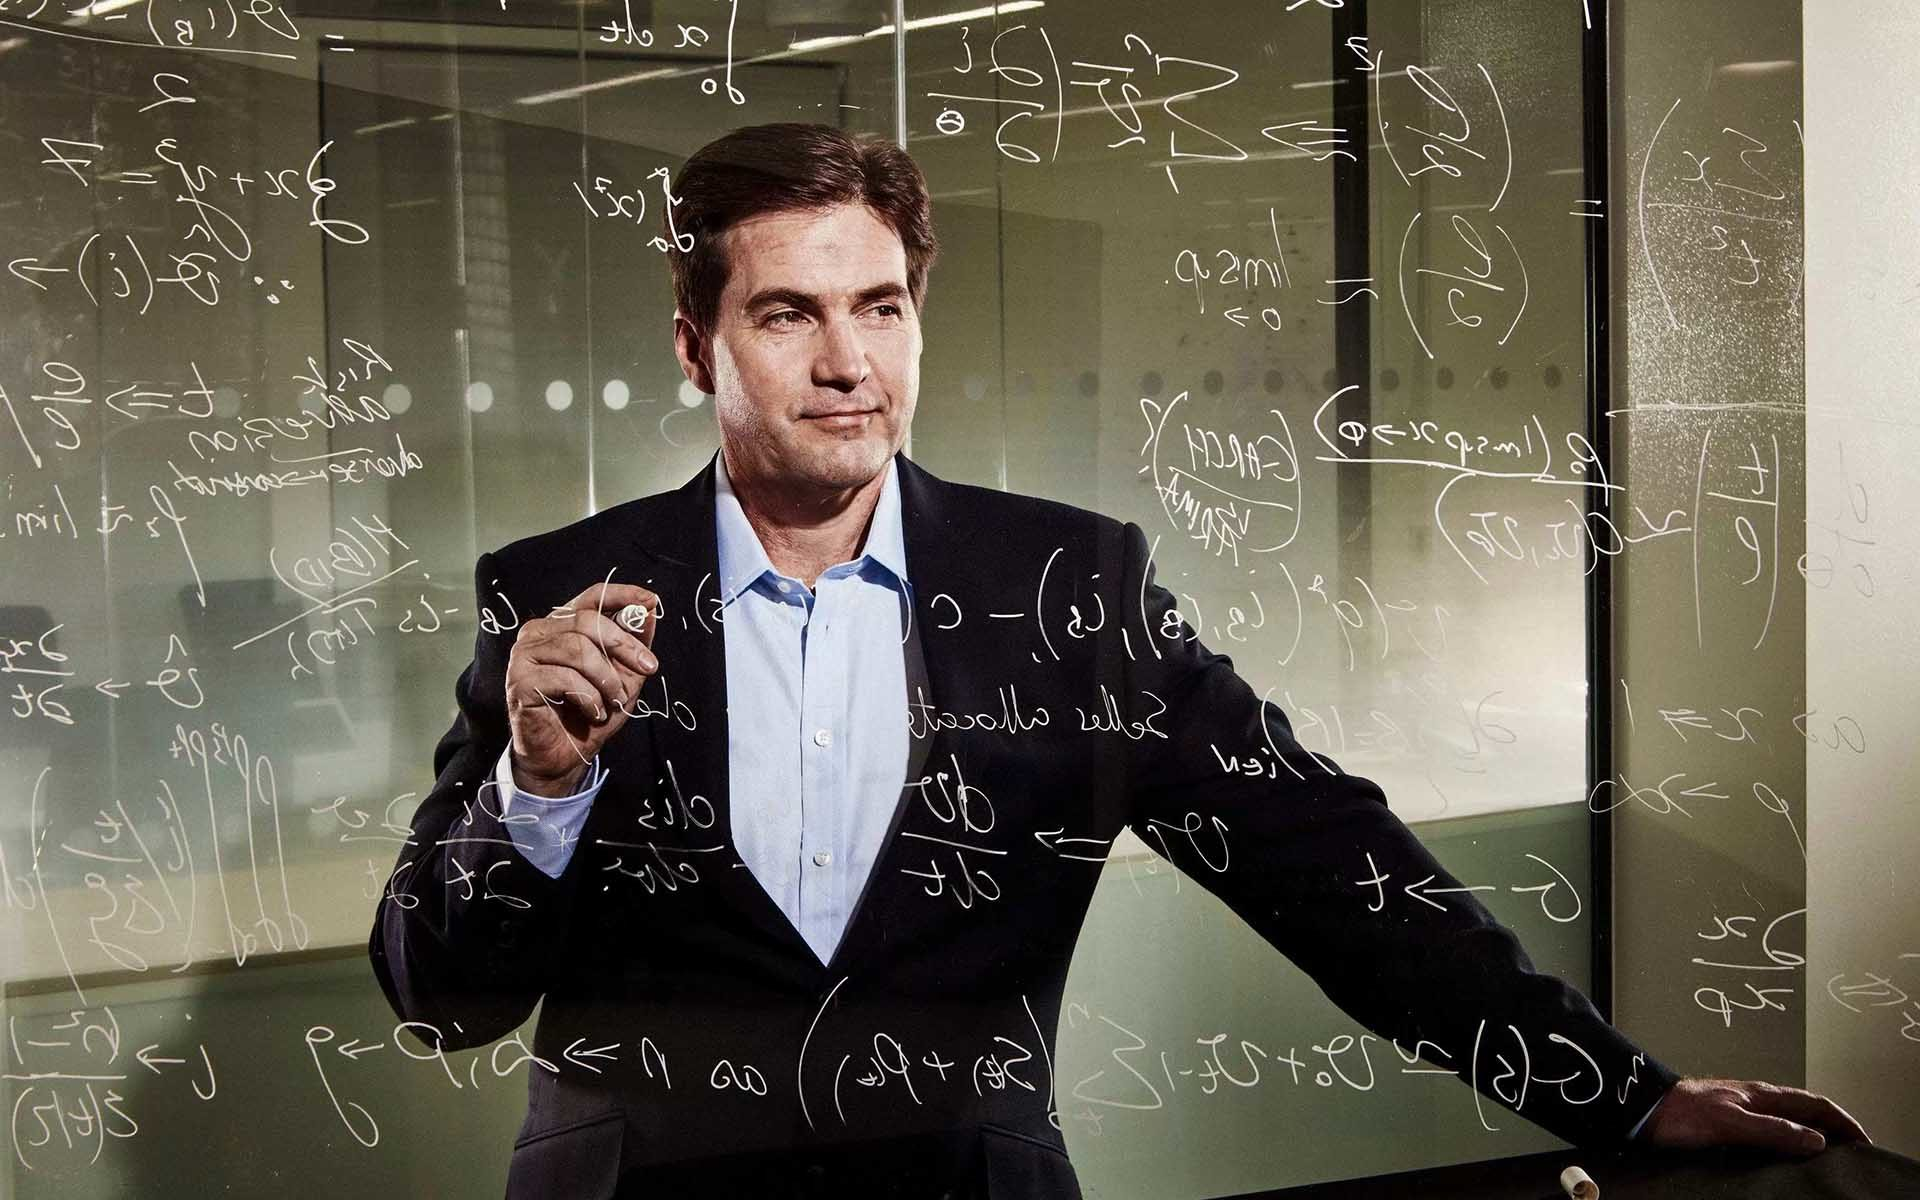 craig wright is fraud